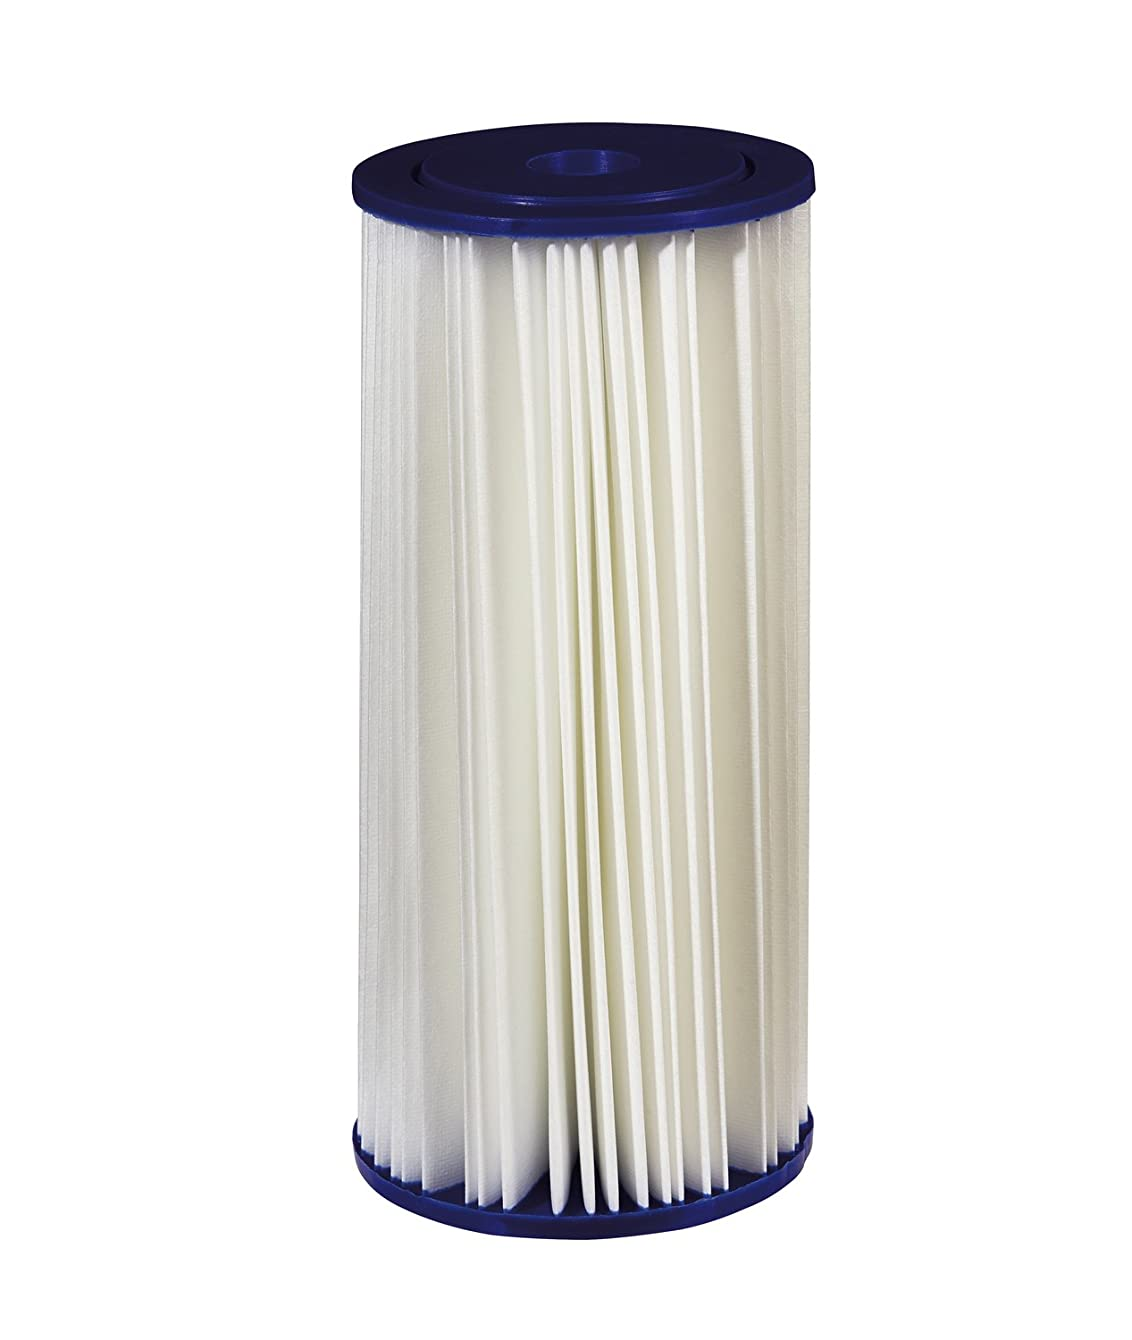 Filtrete Large Capacity Pleated Whole House Water Filter, Sump Style, Reduces 30 Microns Sediment, 1-Pack, (3WH-HDPL-F01)